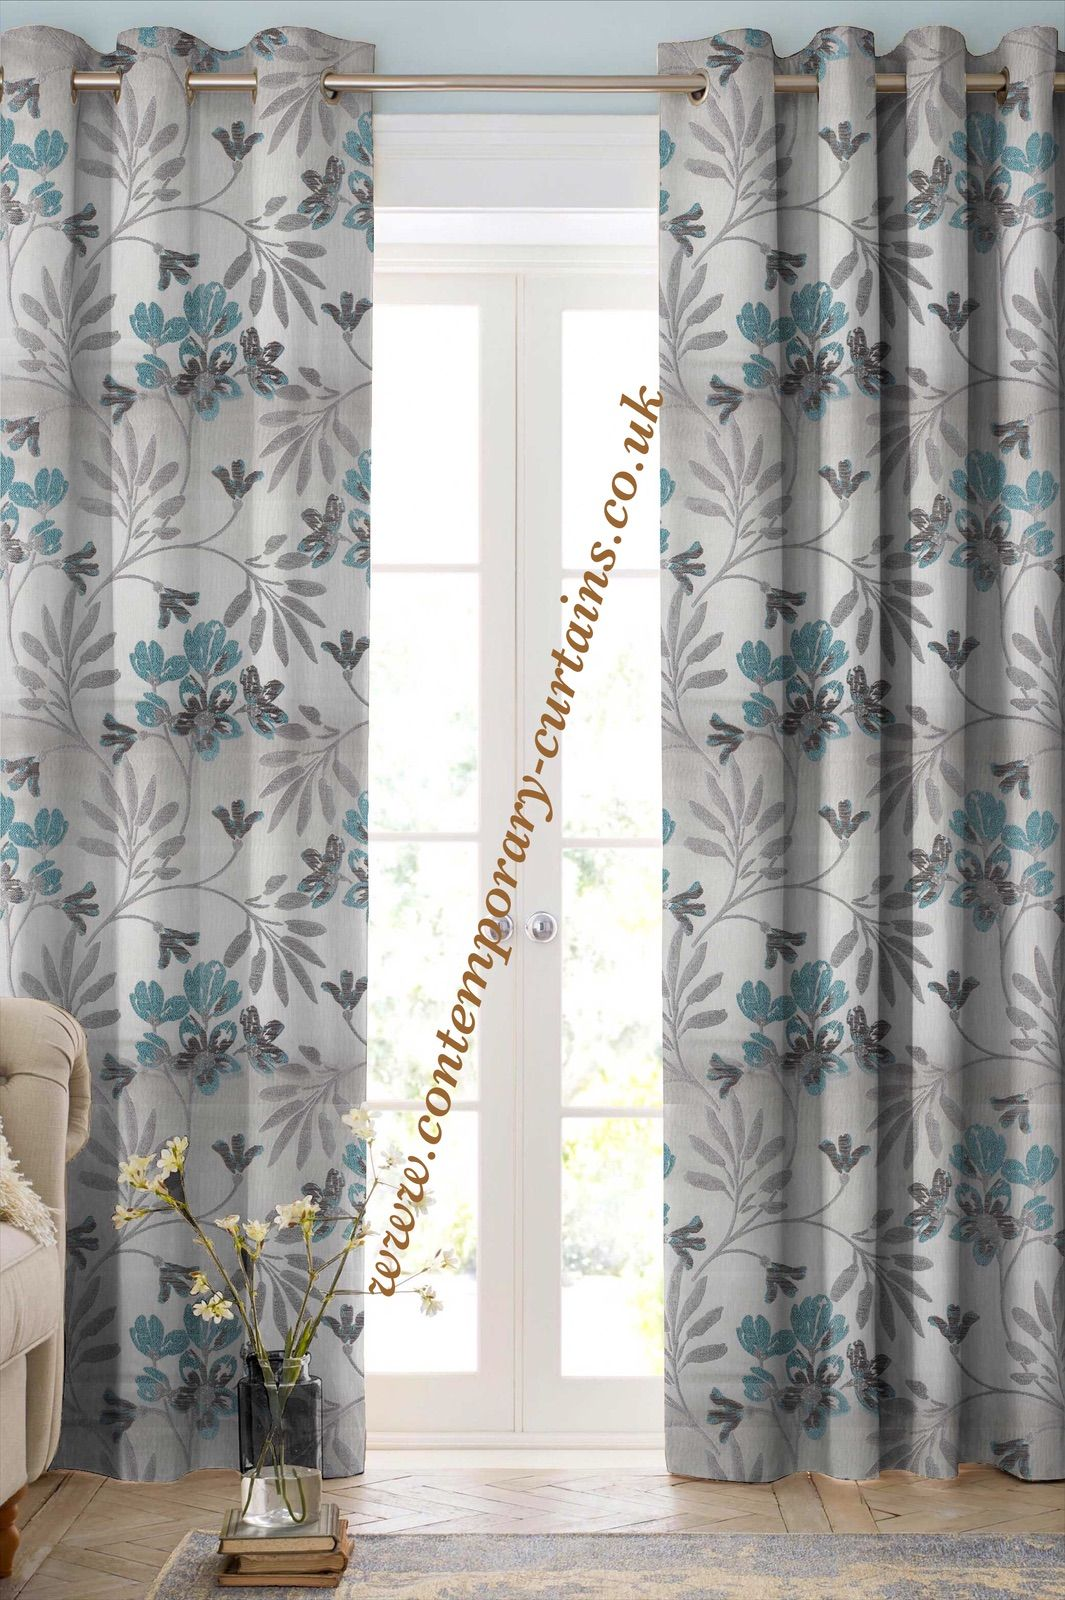 #contemporarycurtains #curtains  #curlyhairstyles #curtainslivingroom  #contemporary  #decor #design #london #uk #new